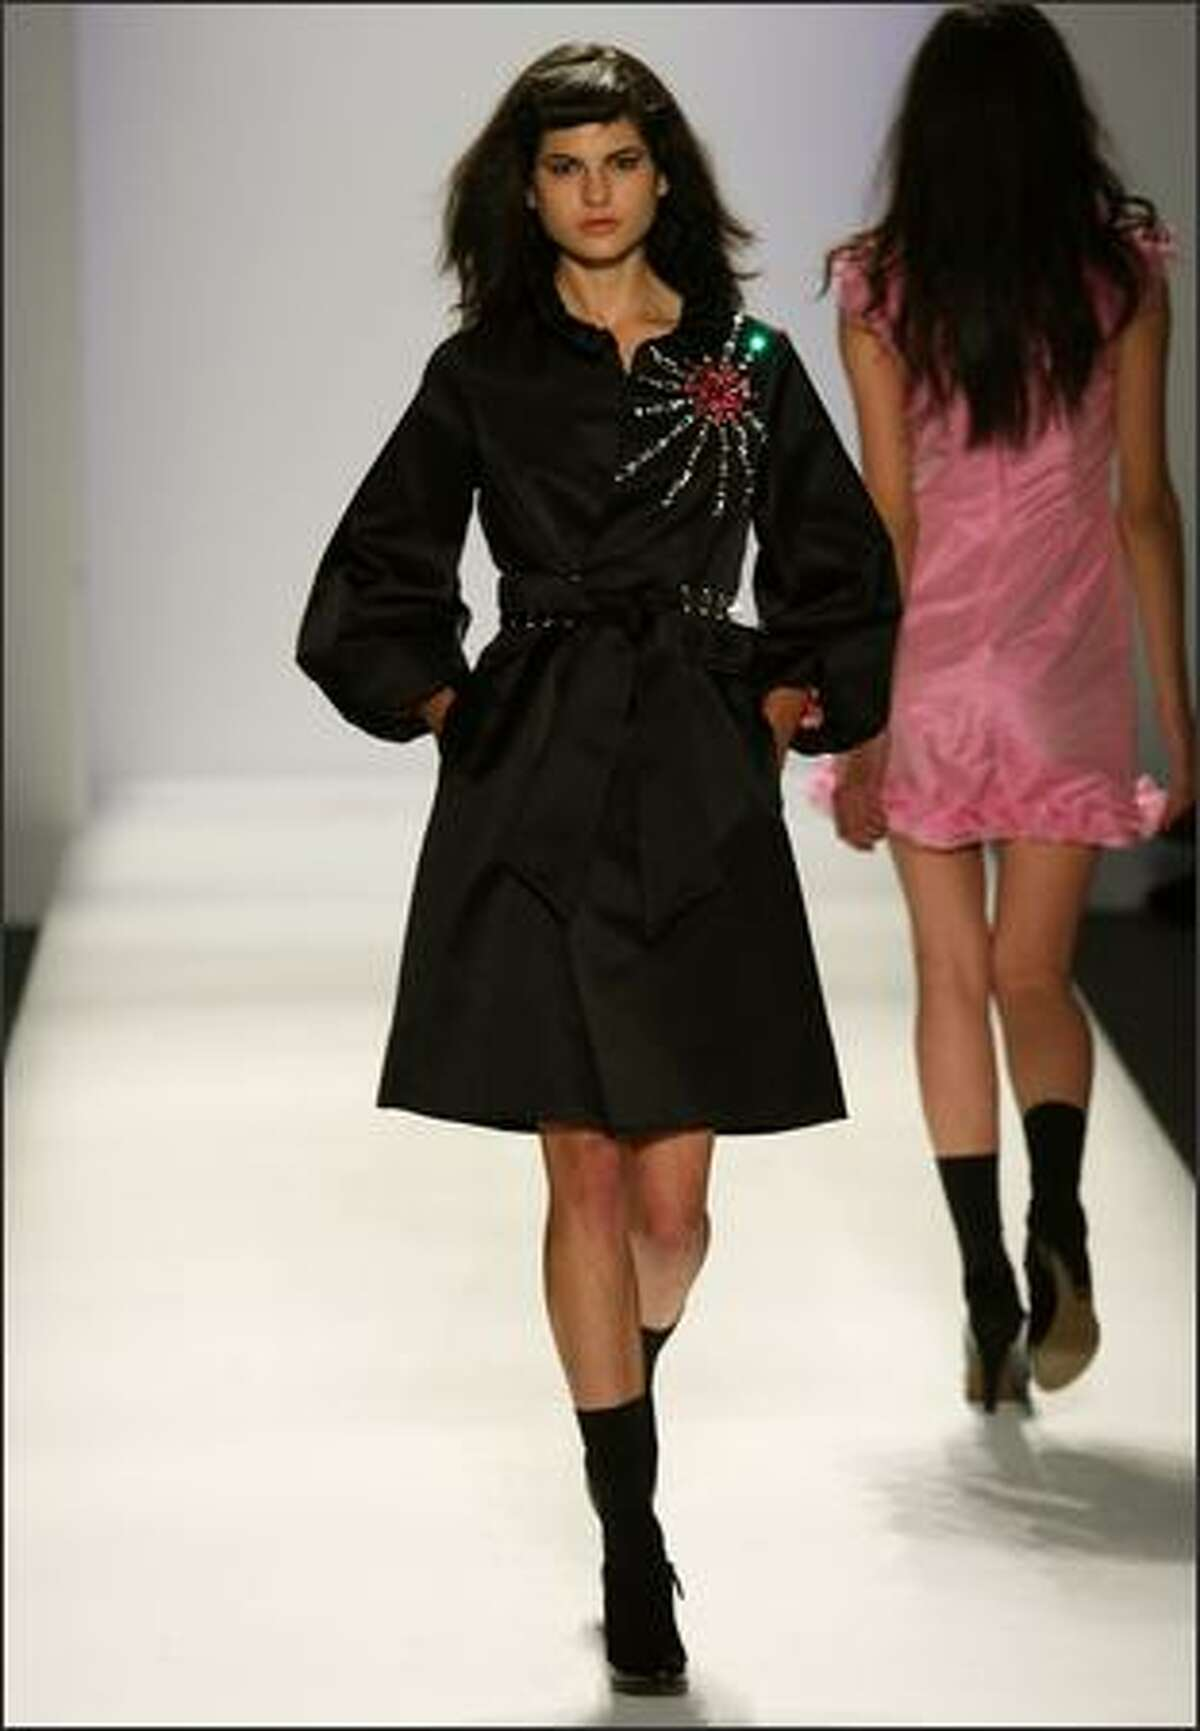 A model walks the runway at the Verrier fashion show.